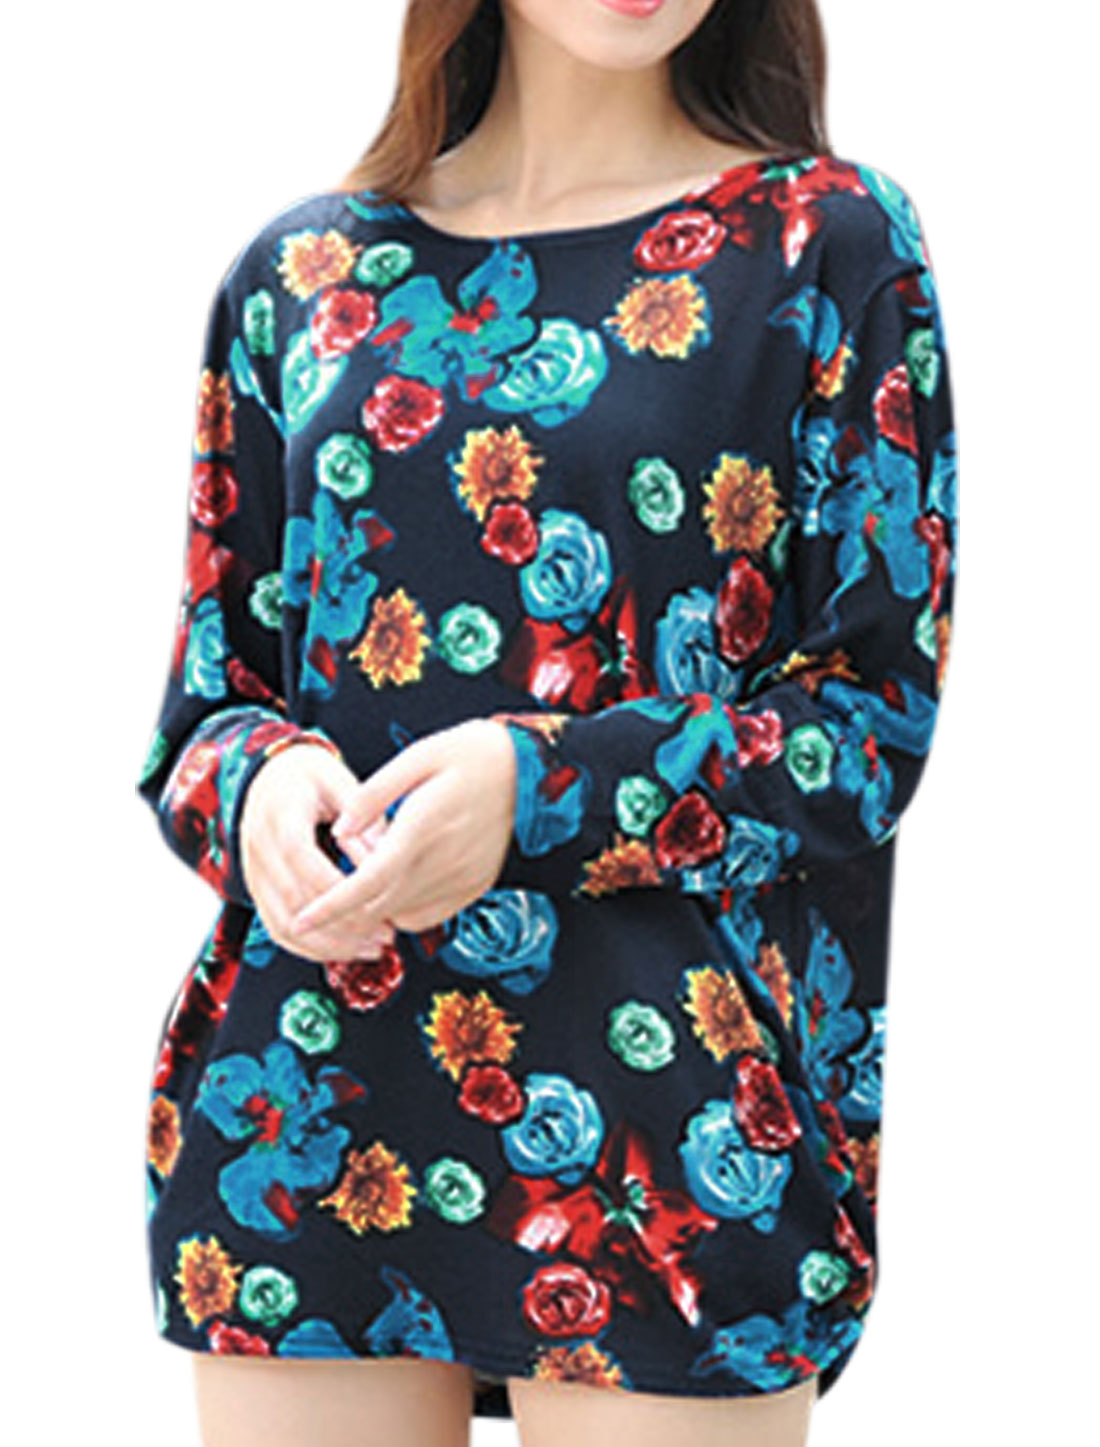 Lady Round Neck Floral Pattern Loose Fit Casual Tunic Top Multicolor S